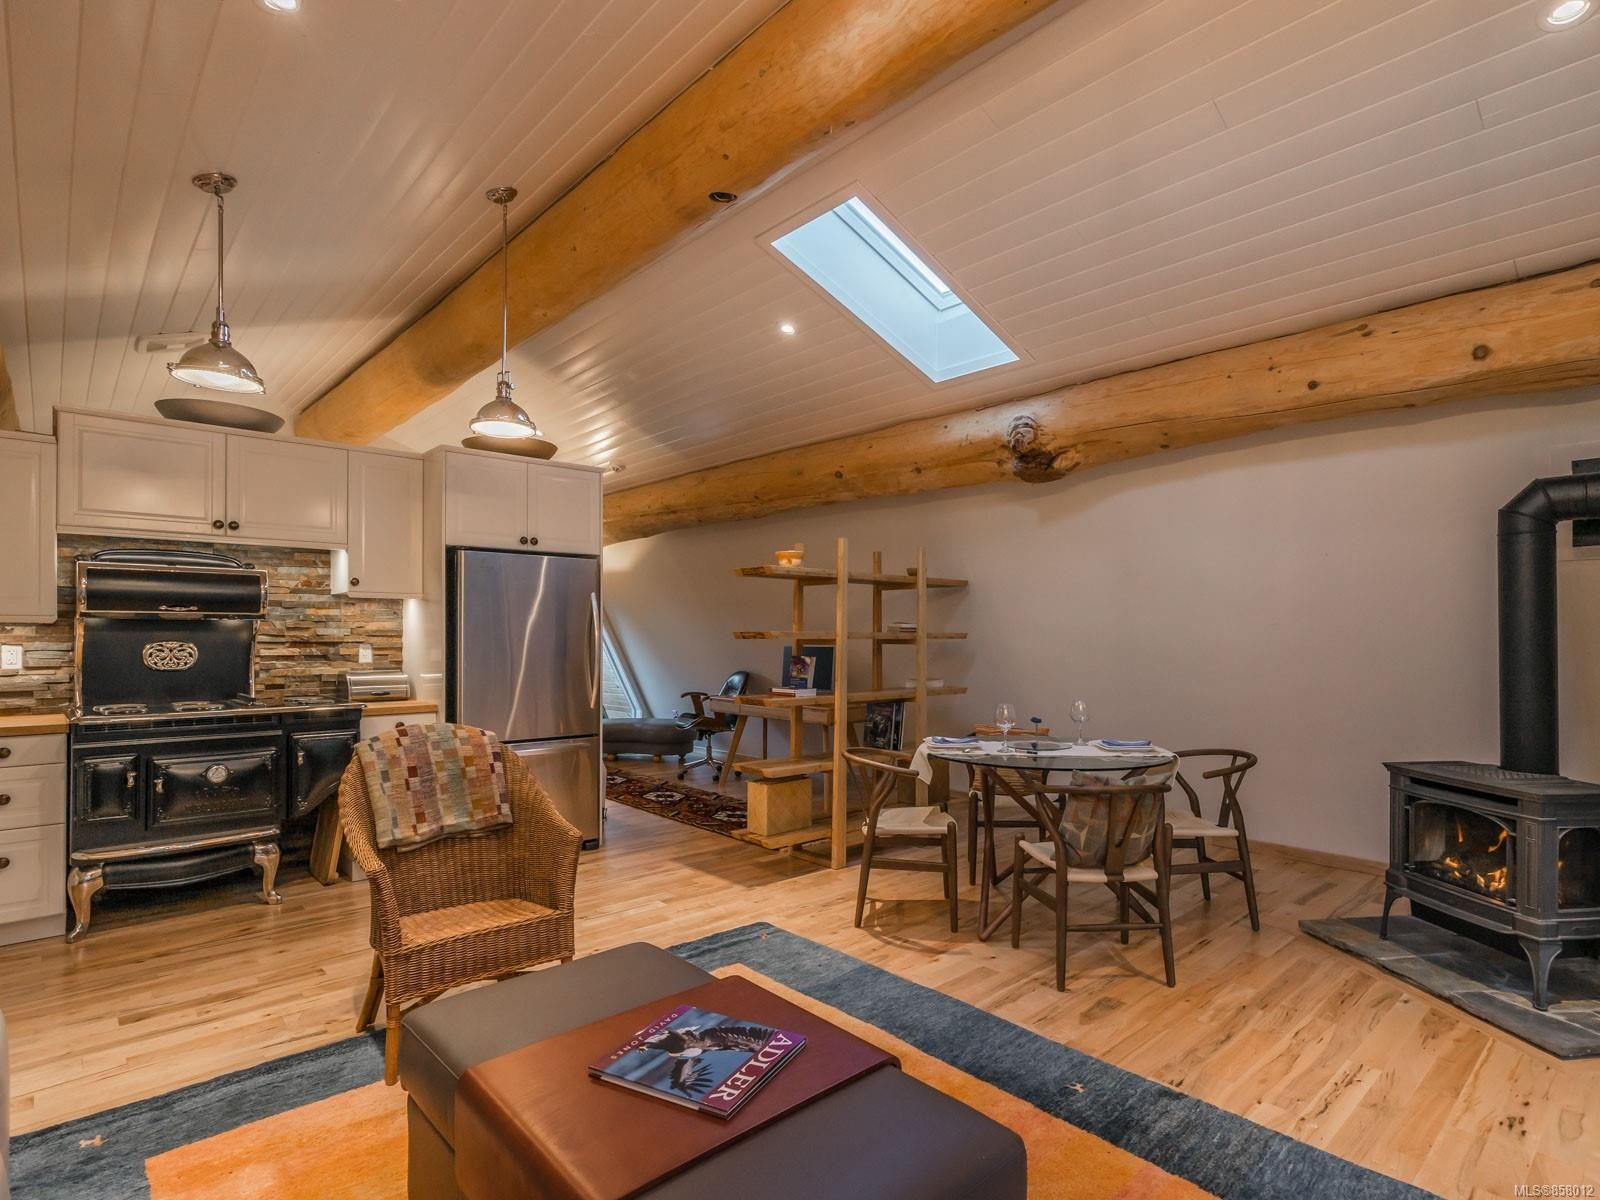 Photo 57: Photos: 6030 MINE Rd in : NI Port McNeill House for sale (North Island)  : MLS®# 858012